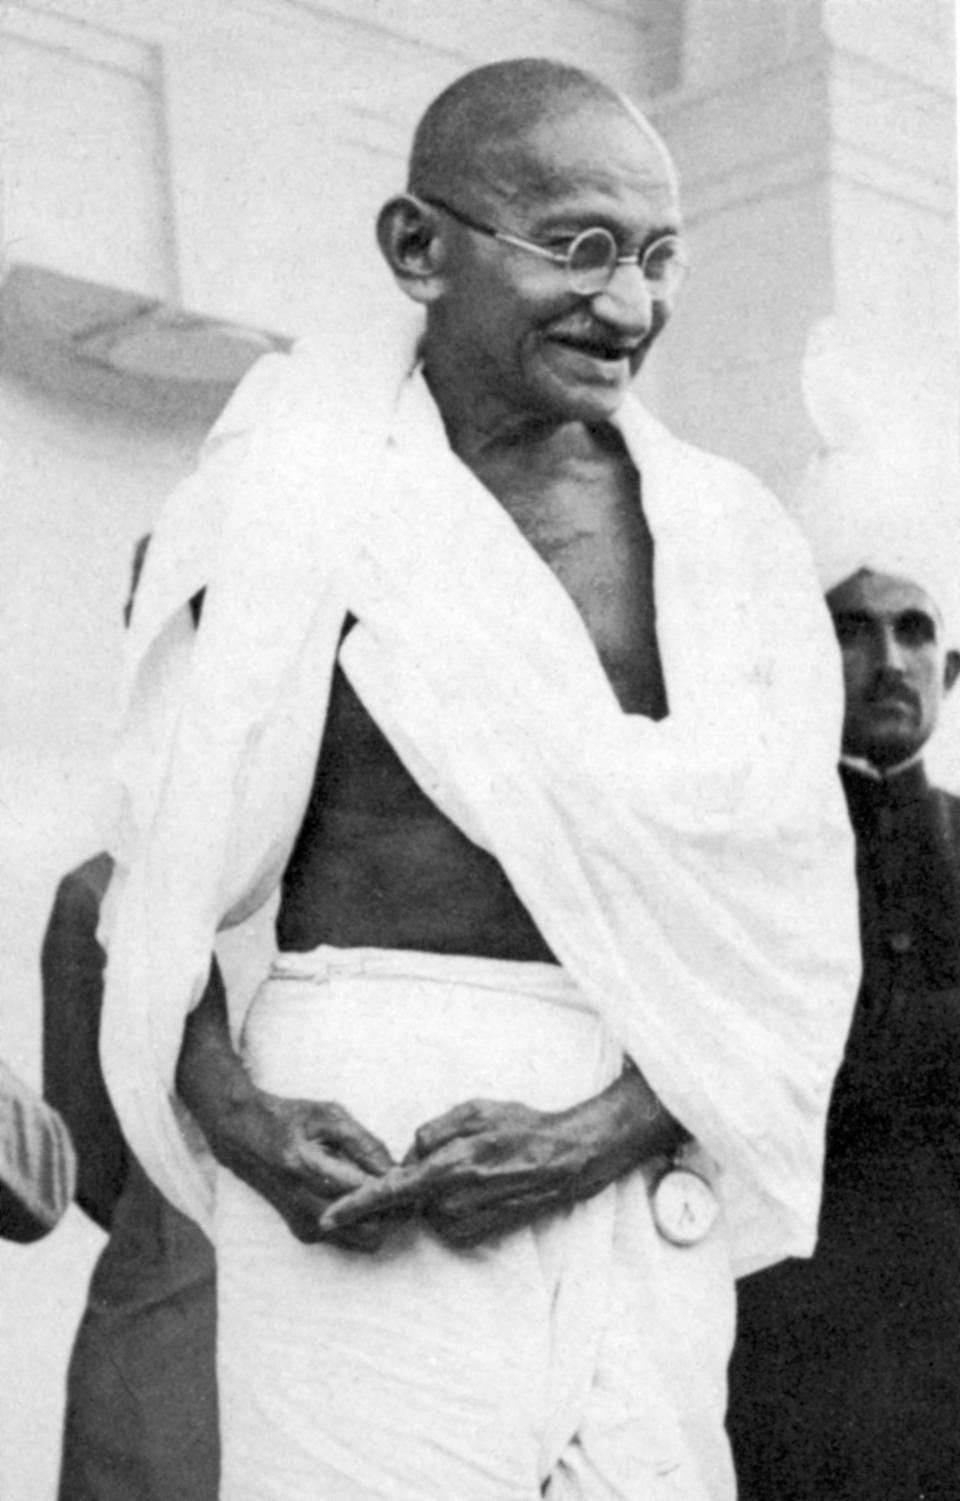 Mohandas Karamchand Gandhi (1869-1948), known as Mahatma (Great Soul), Indian Nationalist leader. (Photo by Ann Ronan Pictures/Print Collector/Getty Images)